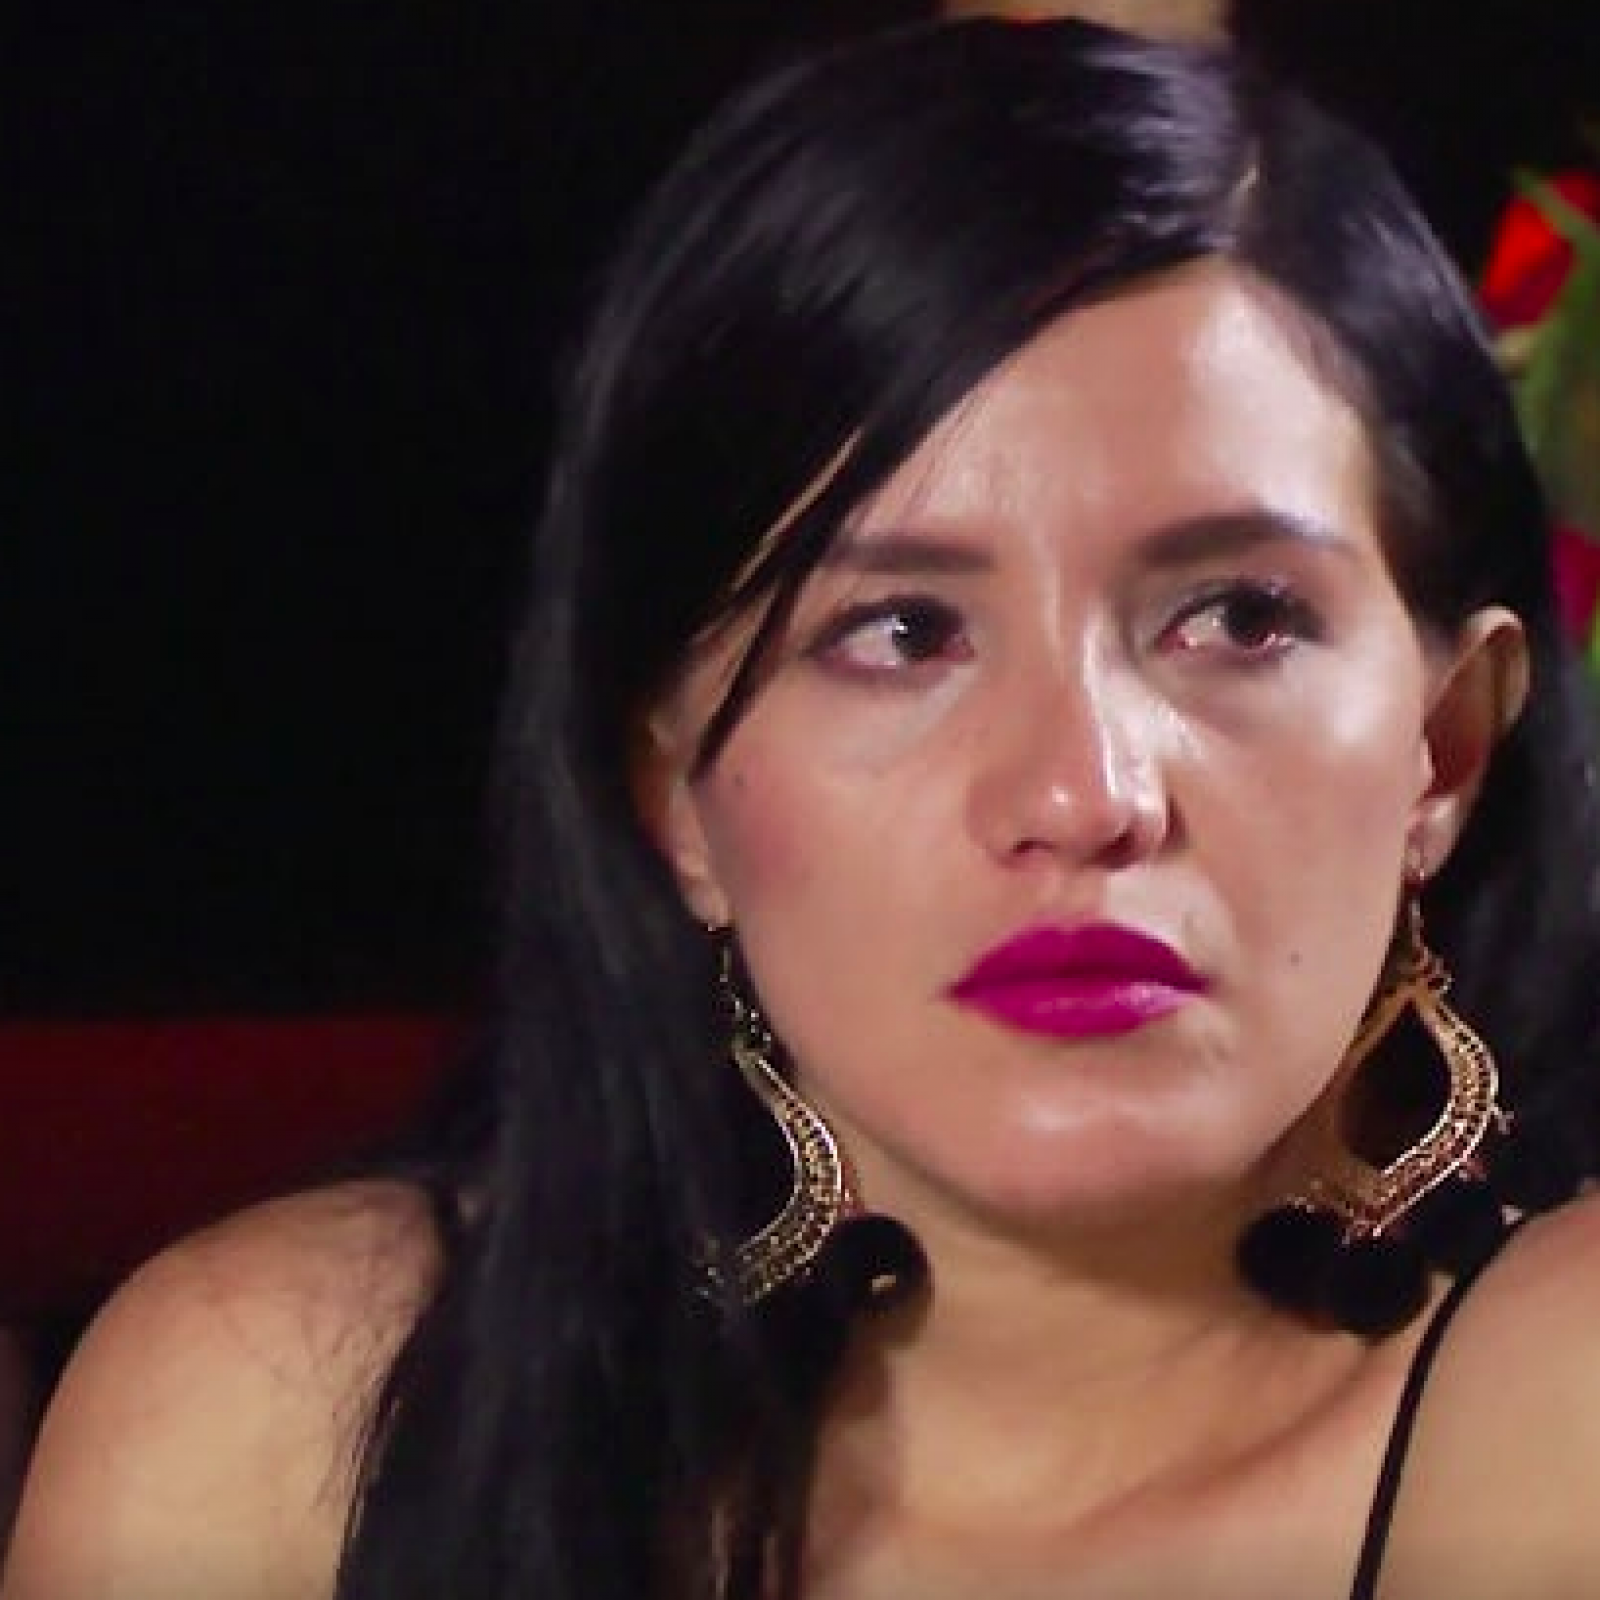 90 Day Fiancé' Where Are They Now? What Couples Are Still Probably